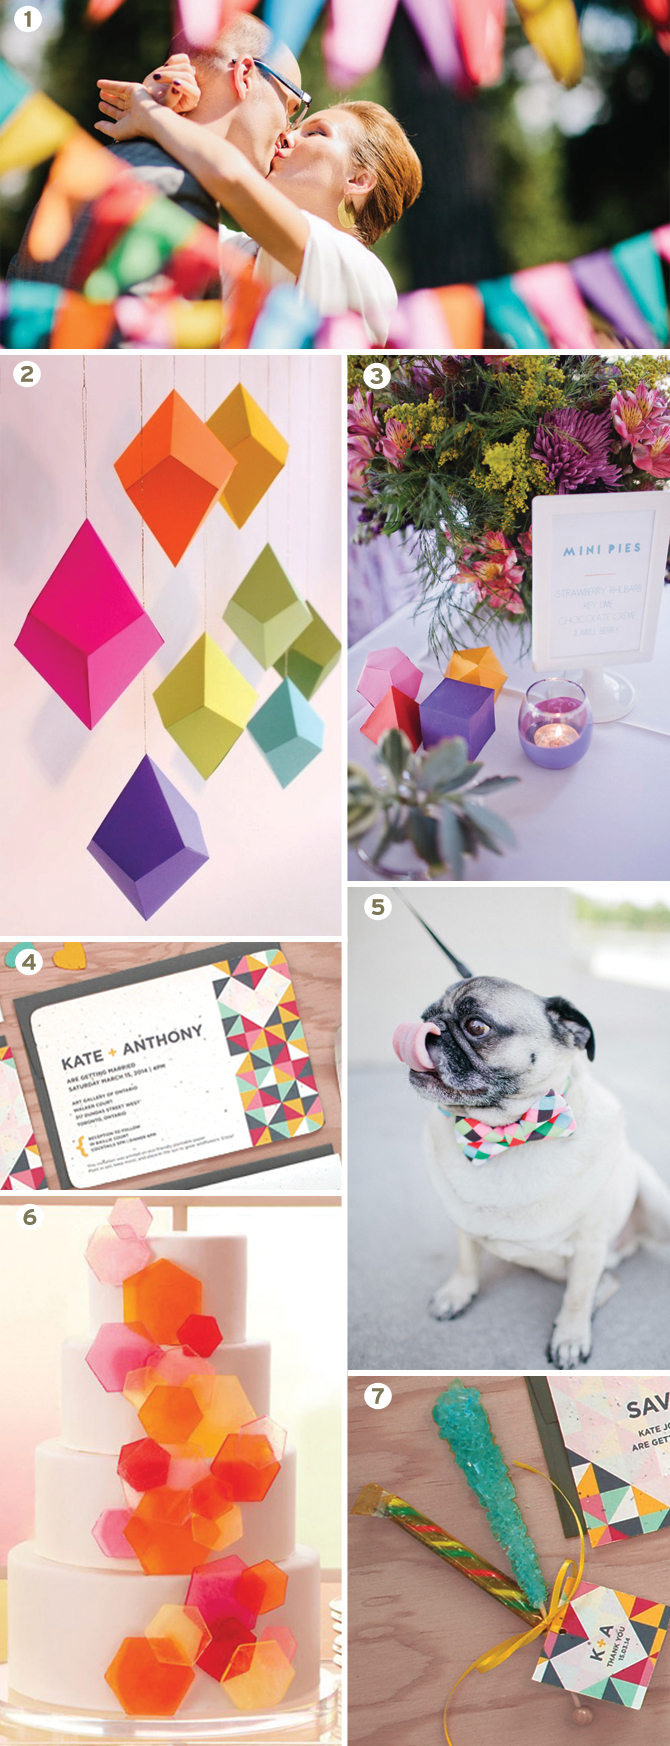 Botanical PaperWorks Geometric Inspiration Board